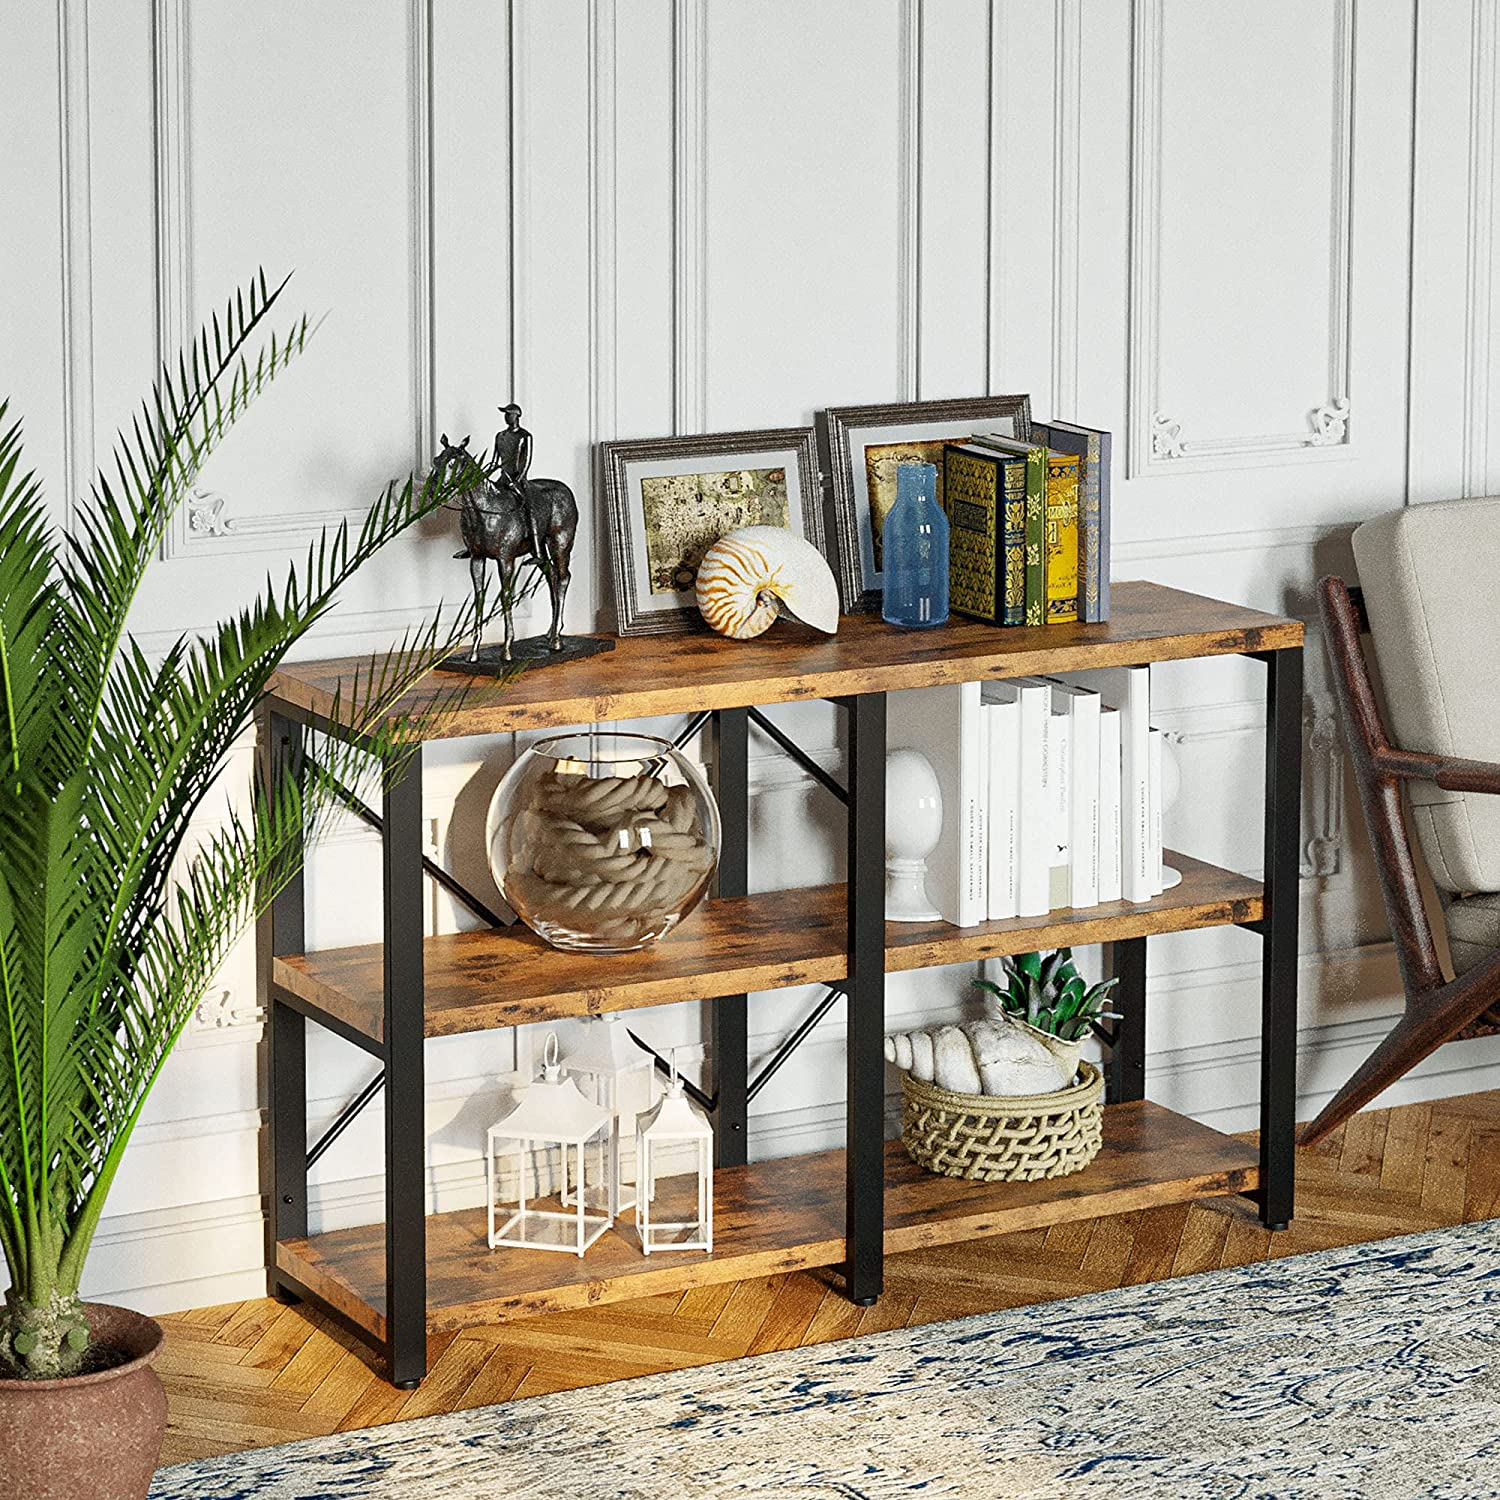 IRONCK Bookshelf Double Wide 3 Tier, Industrial Bookcases, Wood and Metal Bookshelves, Book Shelves for Home Office Decor Display, Easy Assembly, Vintage Brown